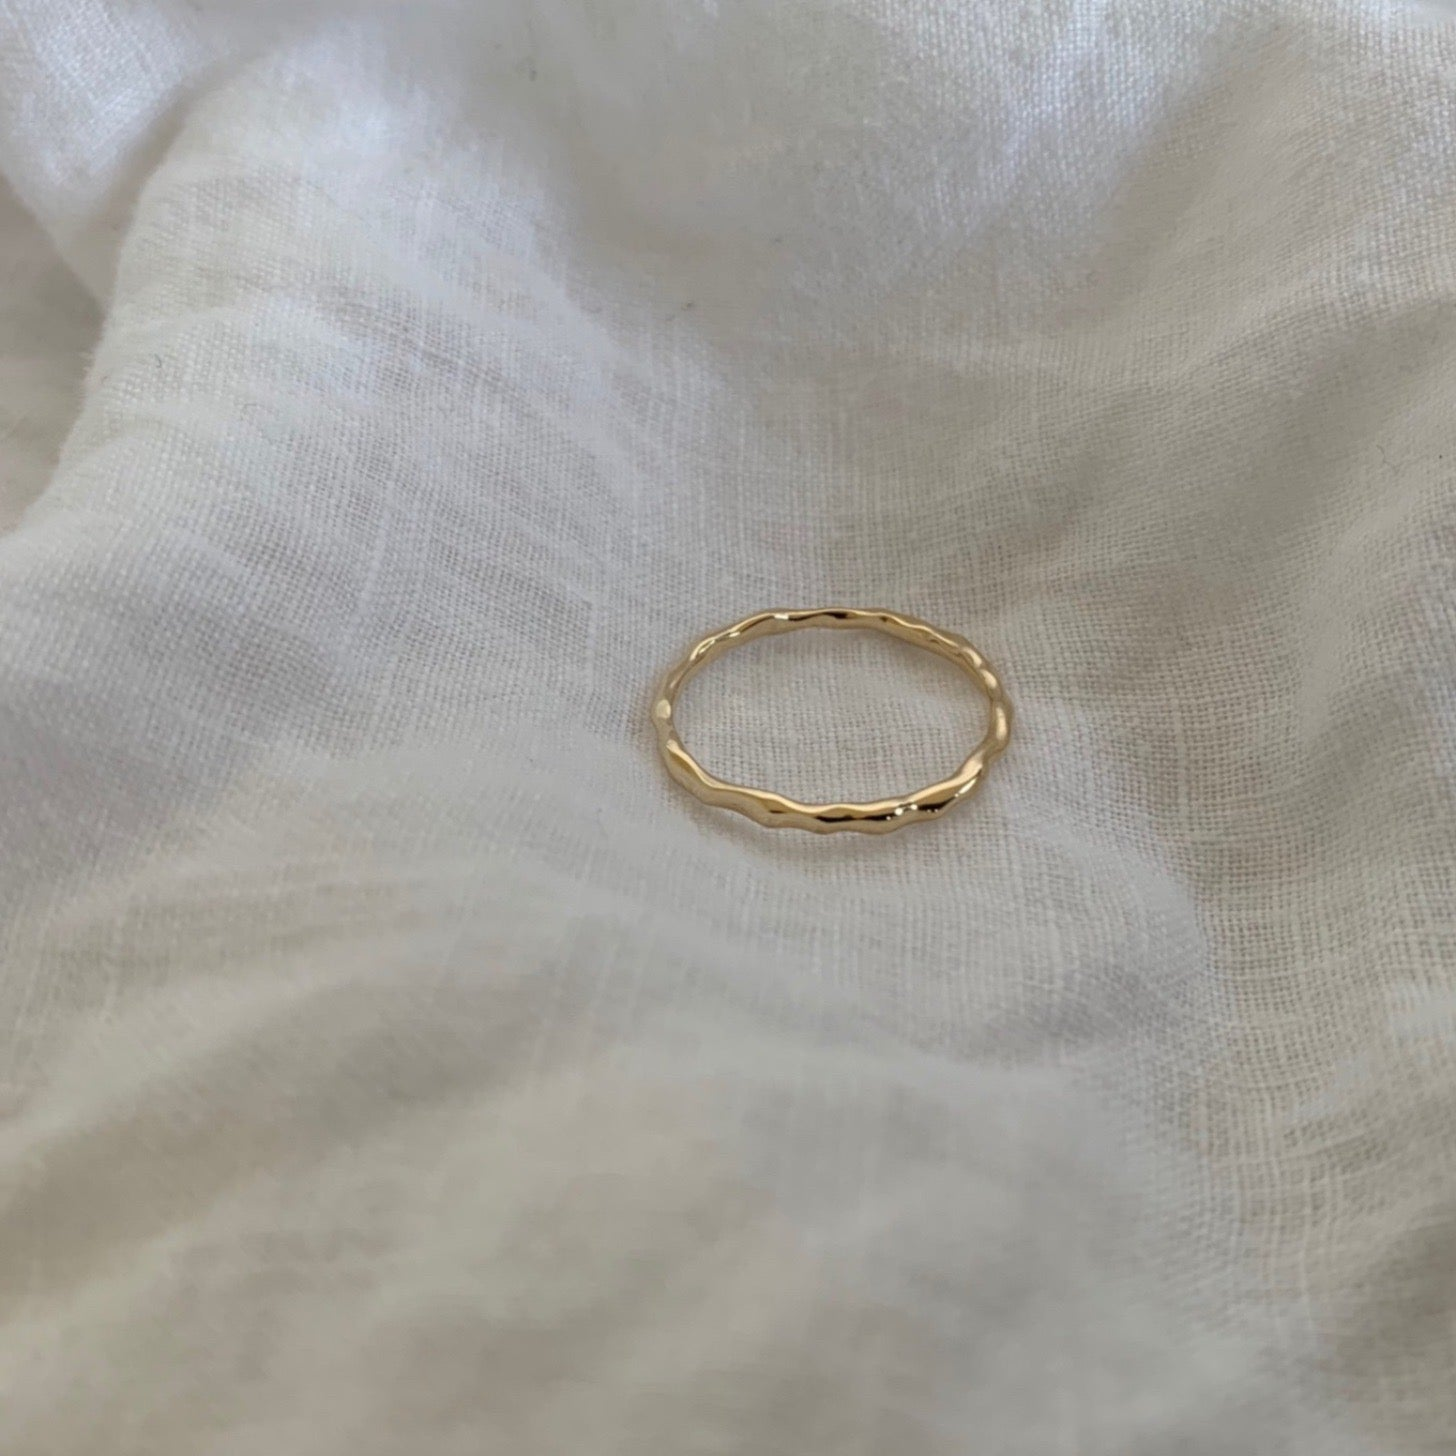 9k GOLD ATHENA - Organic Form Ring